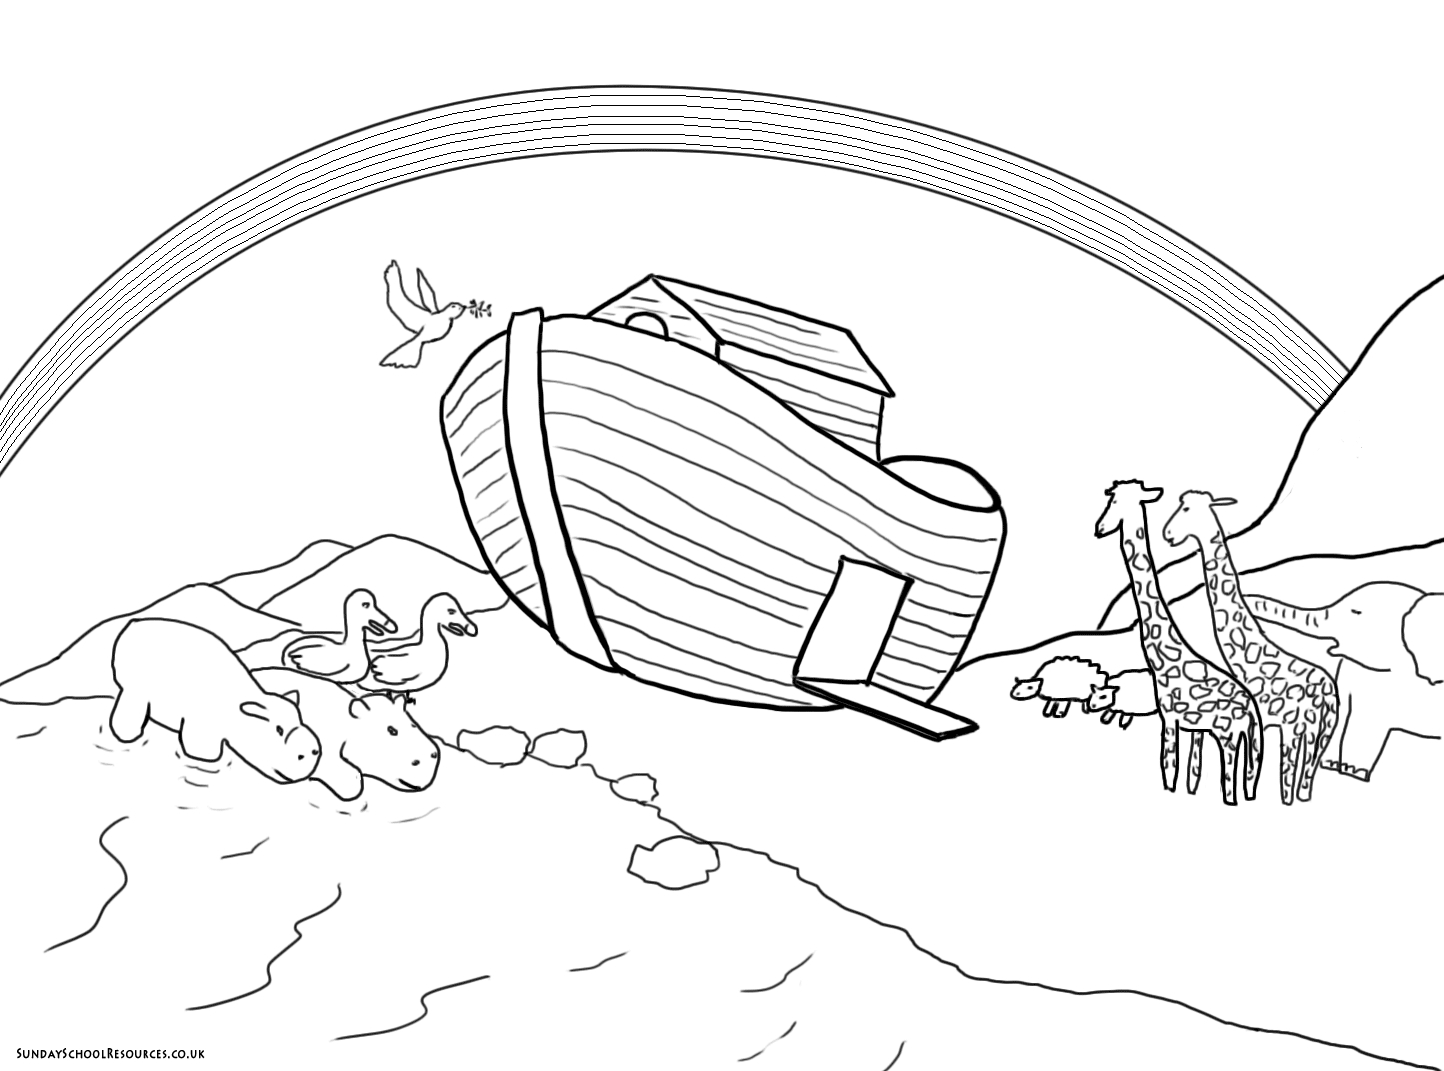 noah and the ark coloring pages - coloring noahs ark